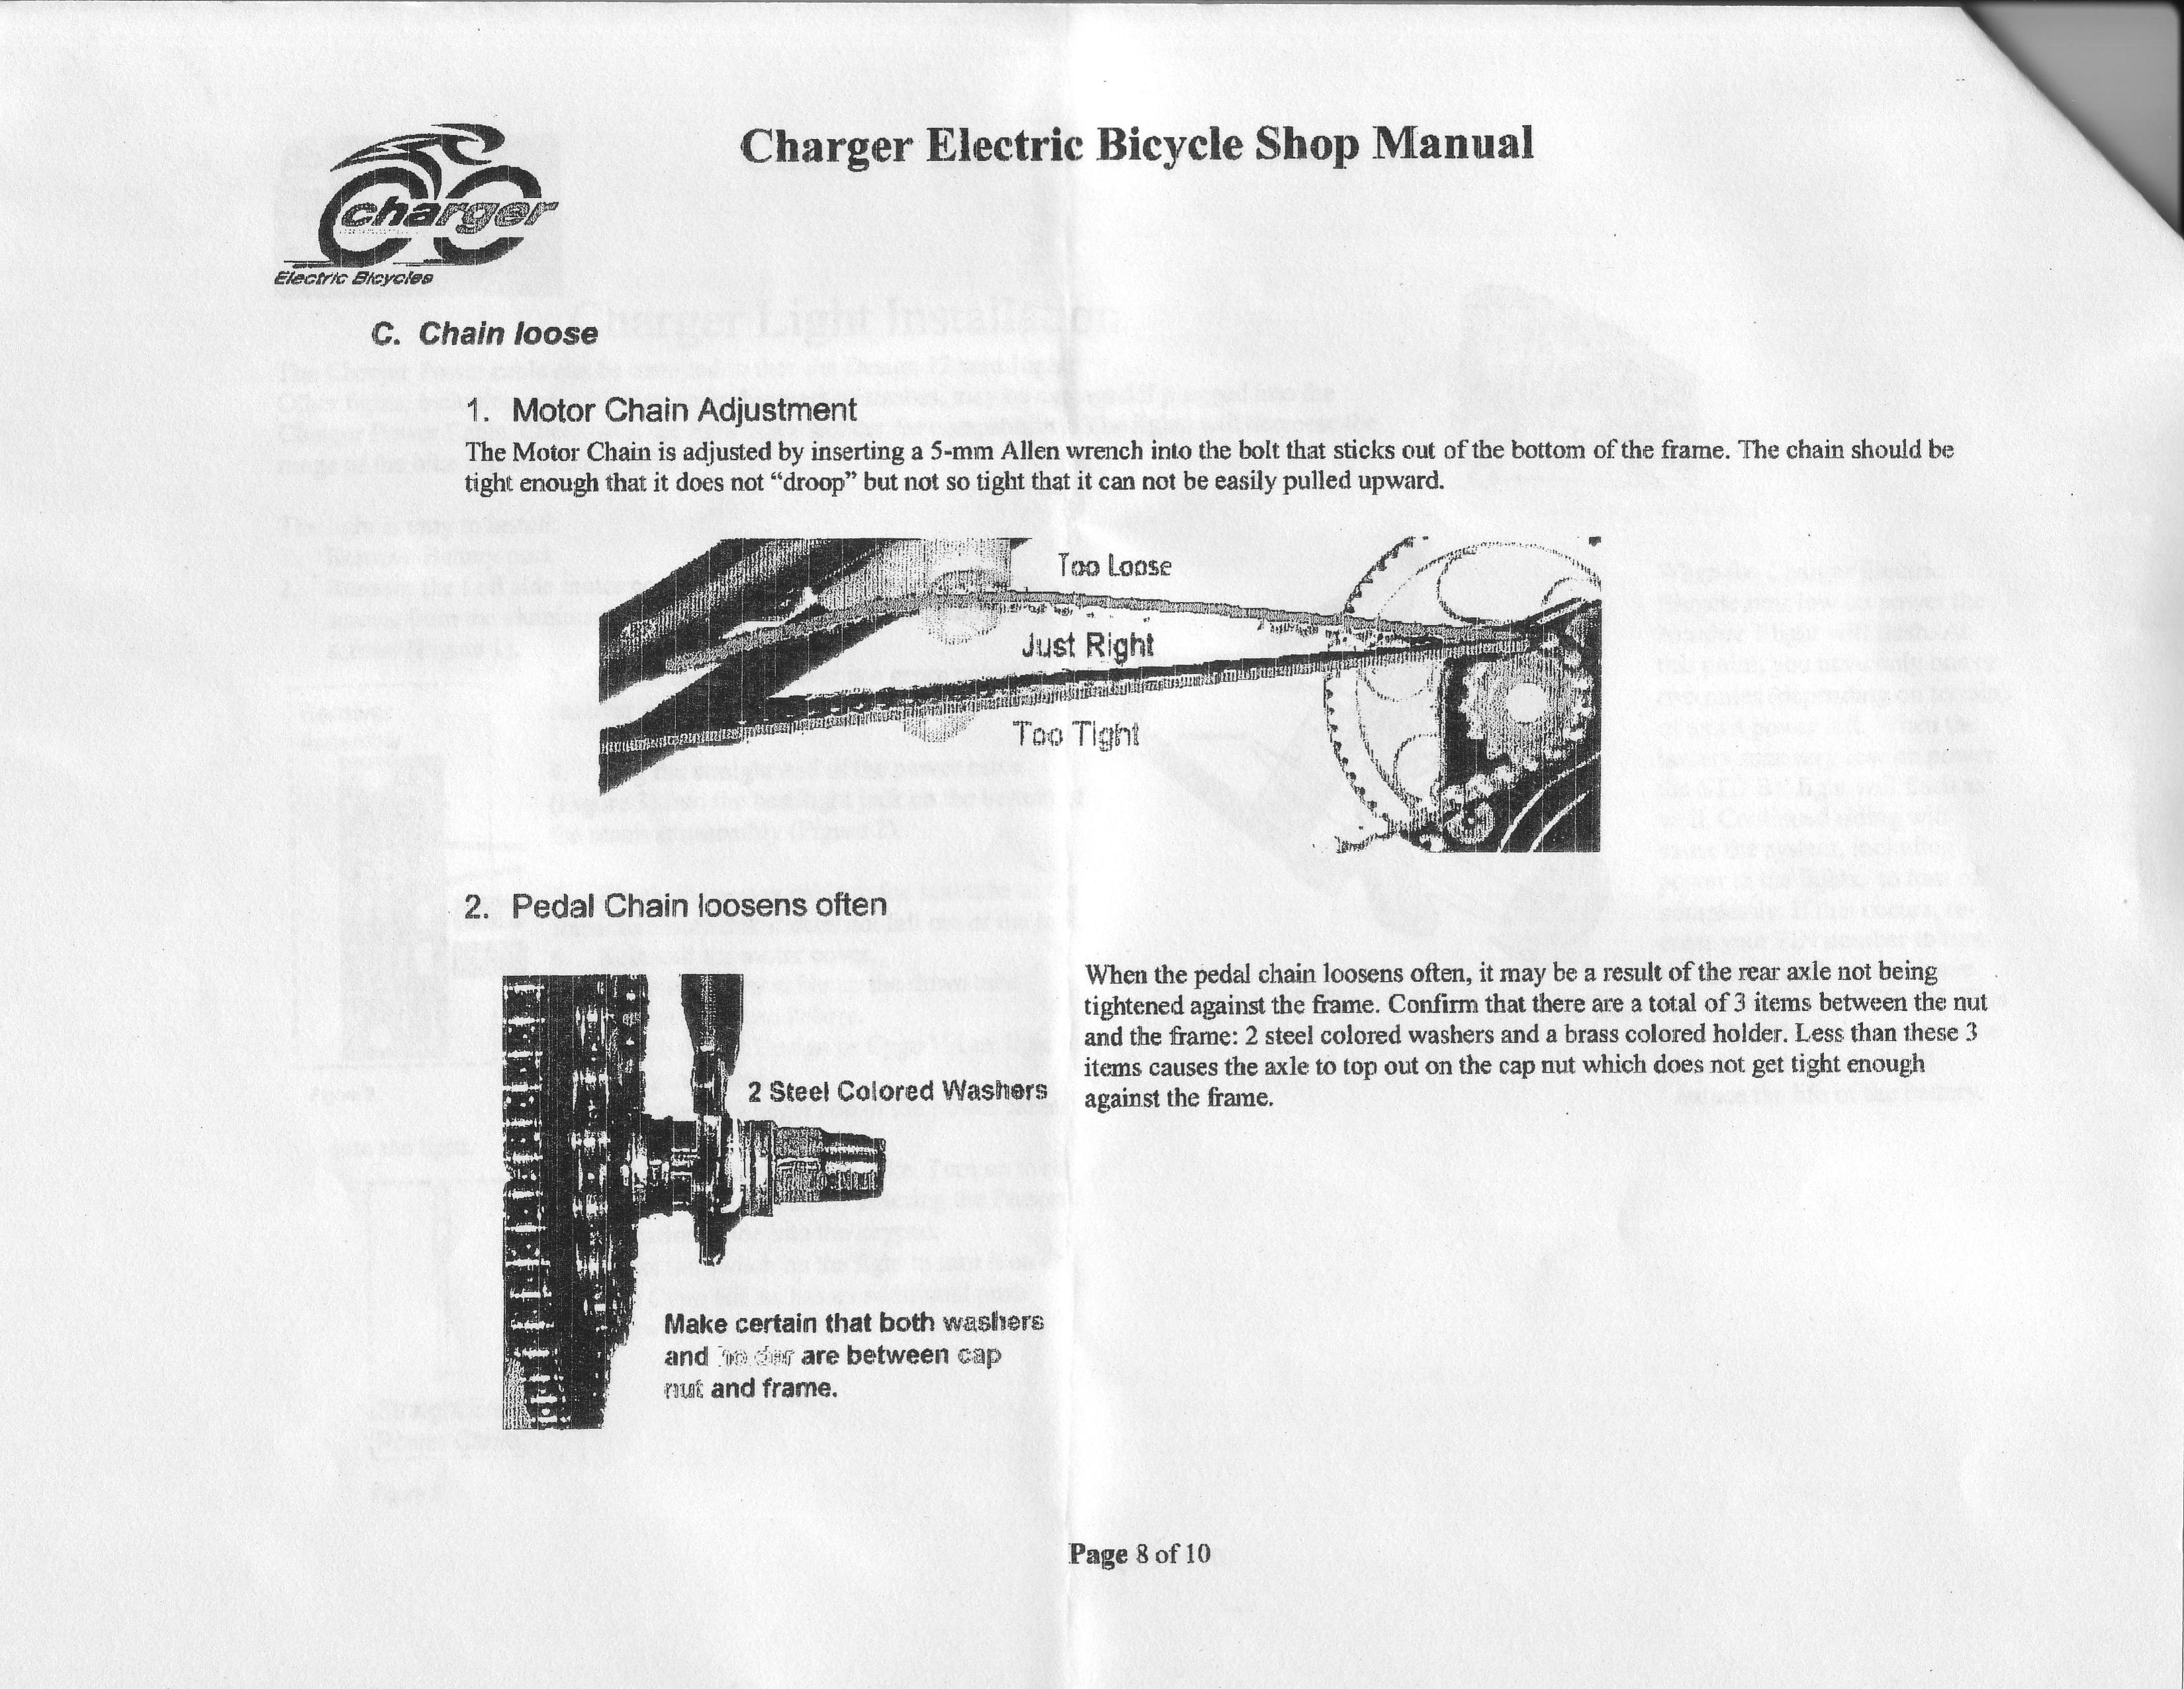 Bladez Electric Scooter Wiring Diagram Trusted Diagrams Cycle For Diagnose And Fix Bikes Scooters Golf Cart